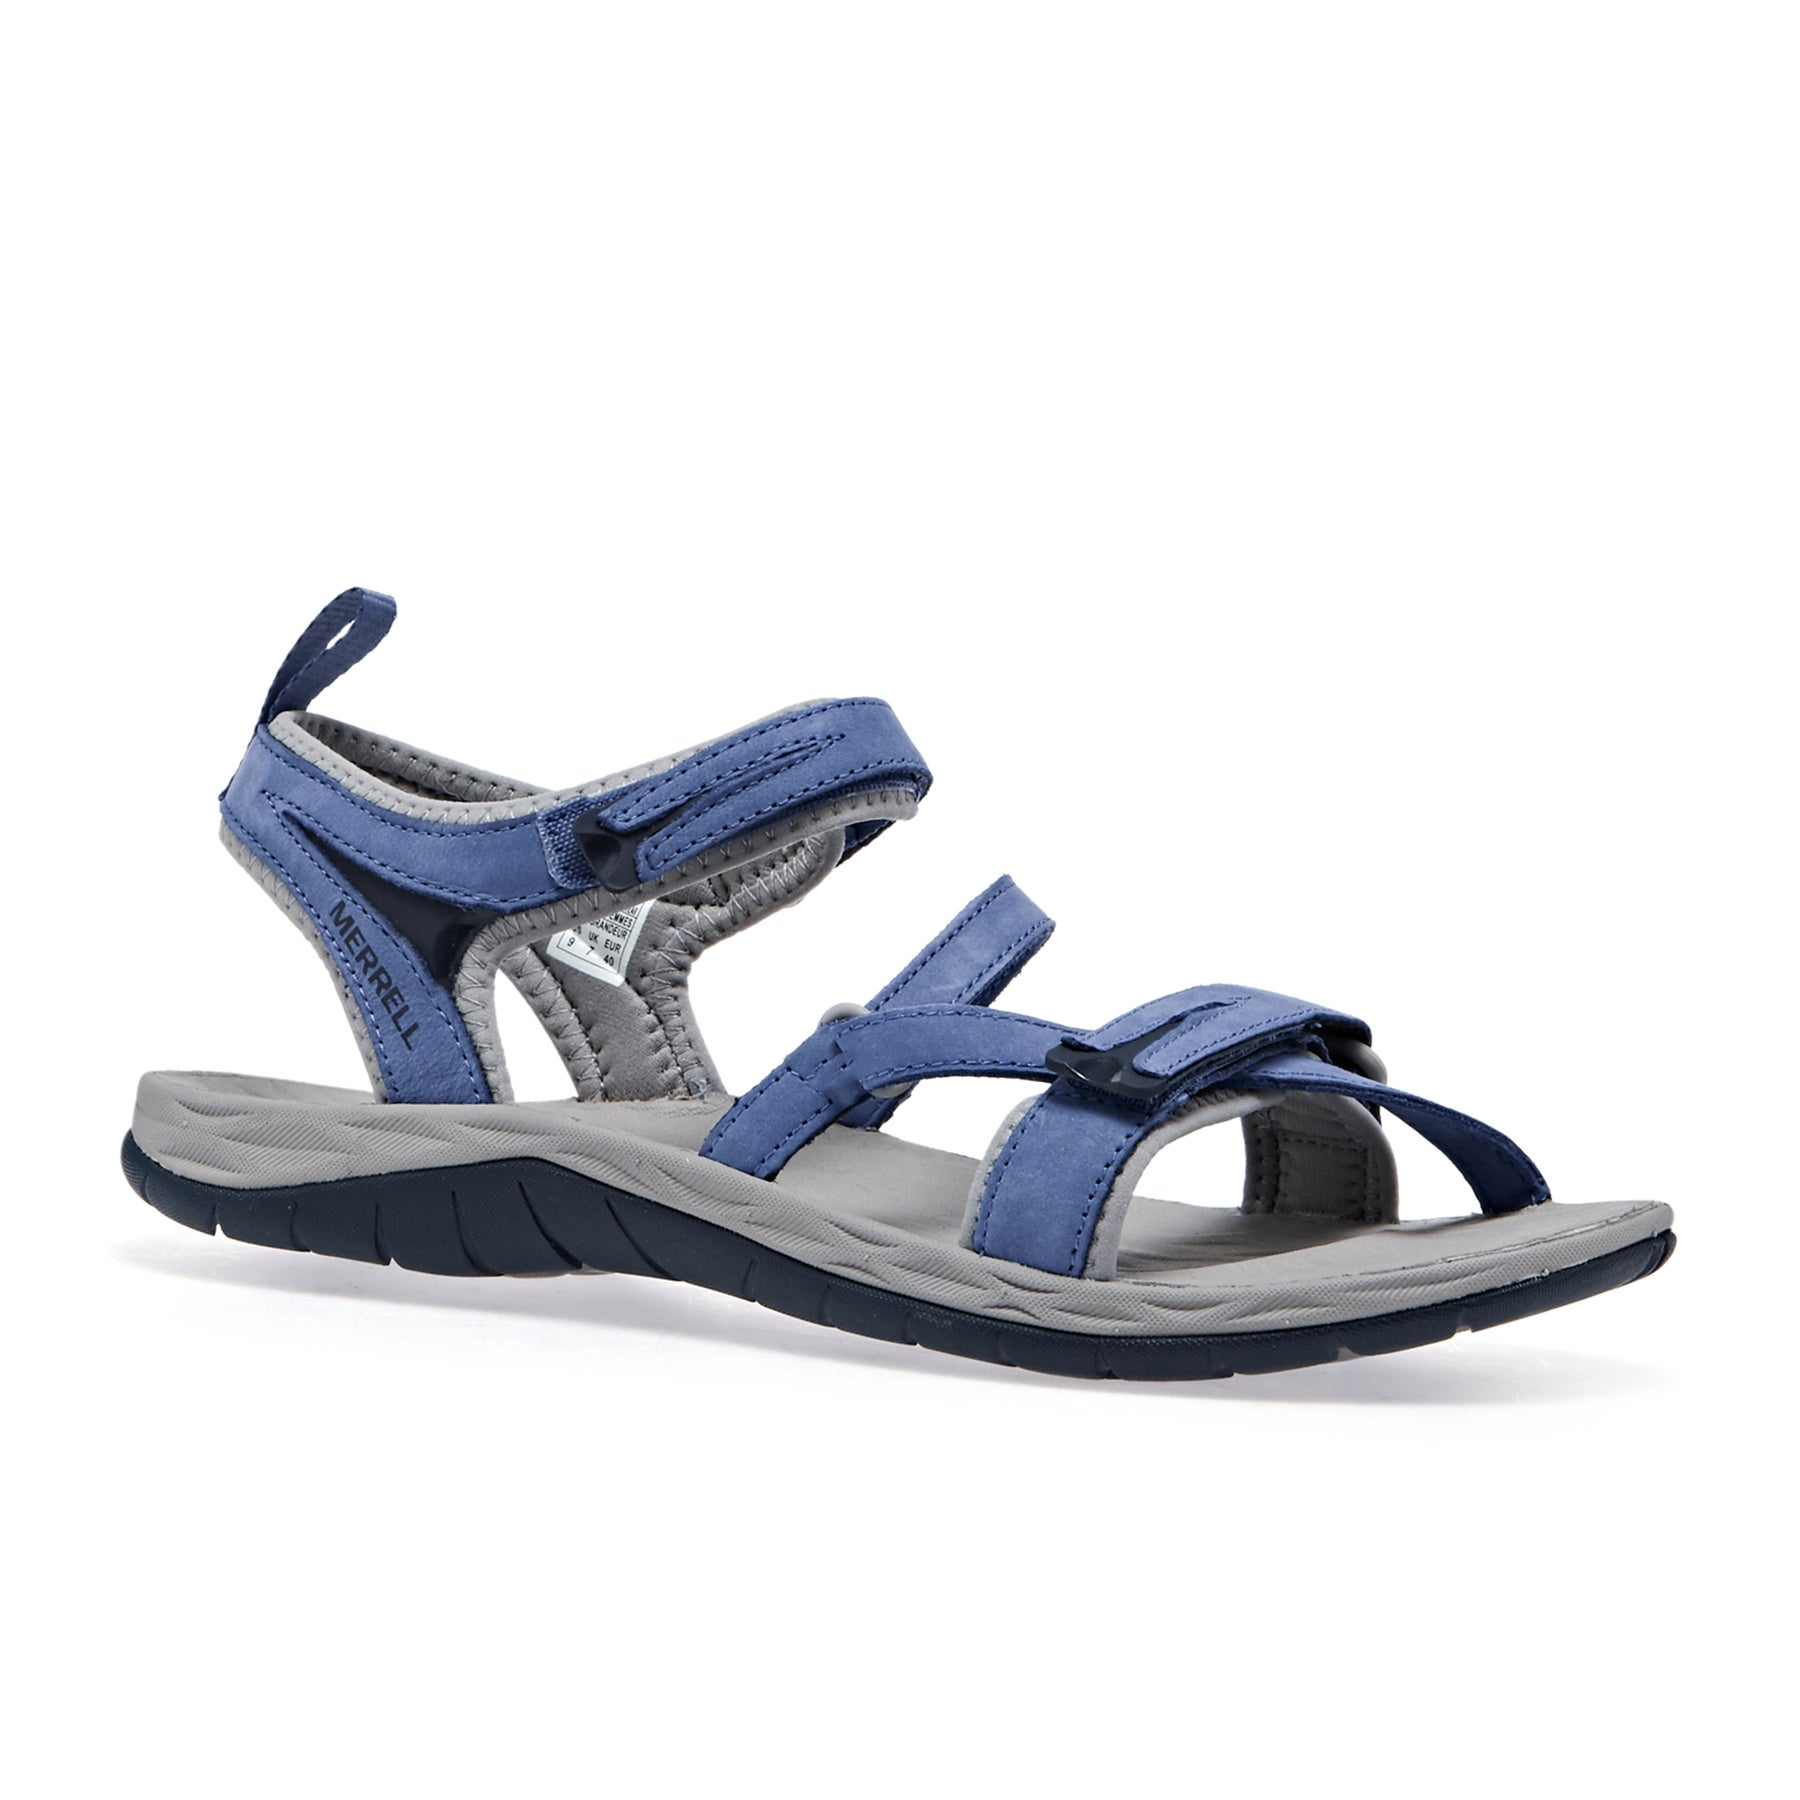 117b3d6f3032 Merrell Siren Strap Q2 Womens サンダル available from Surfdome